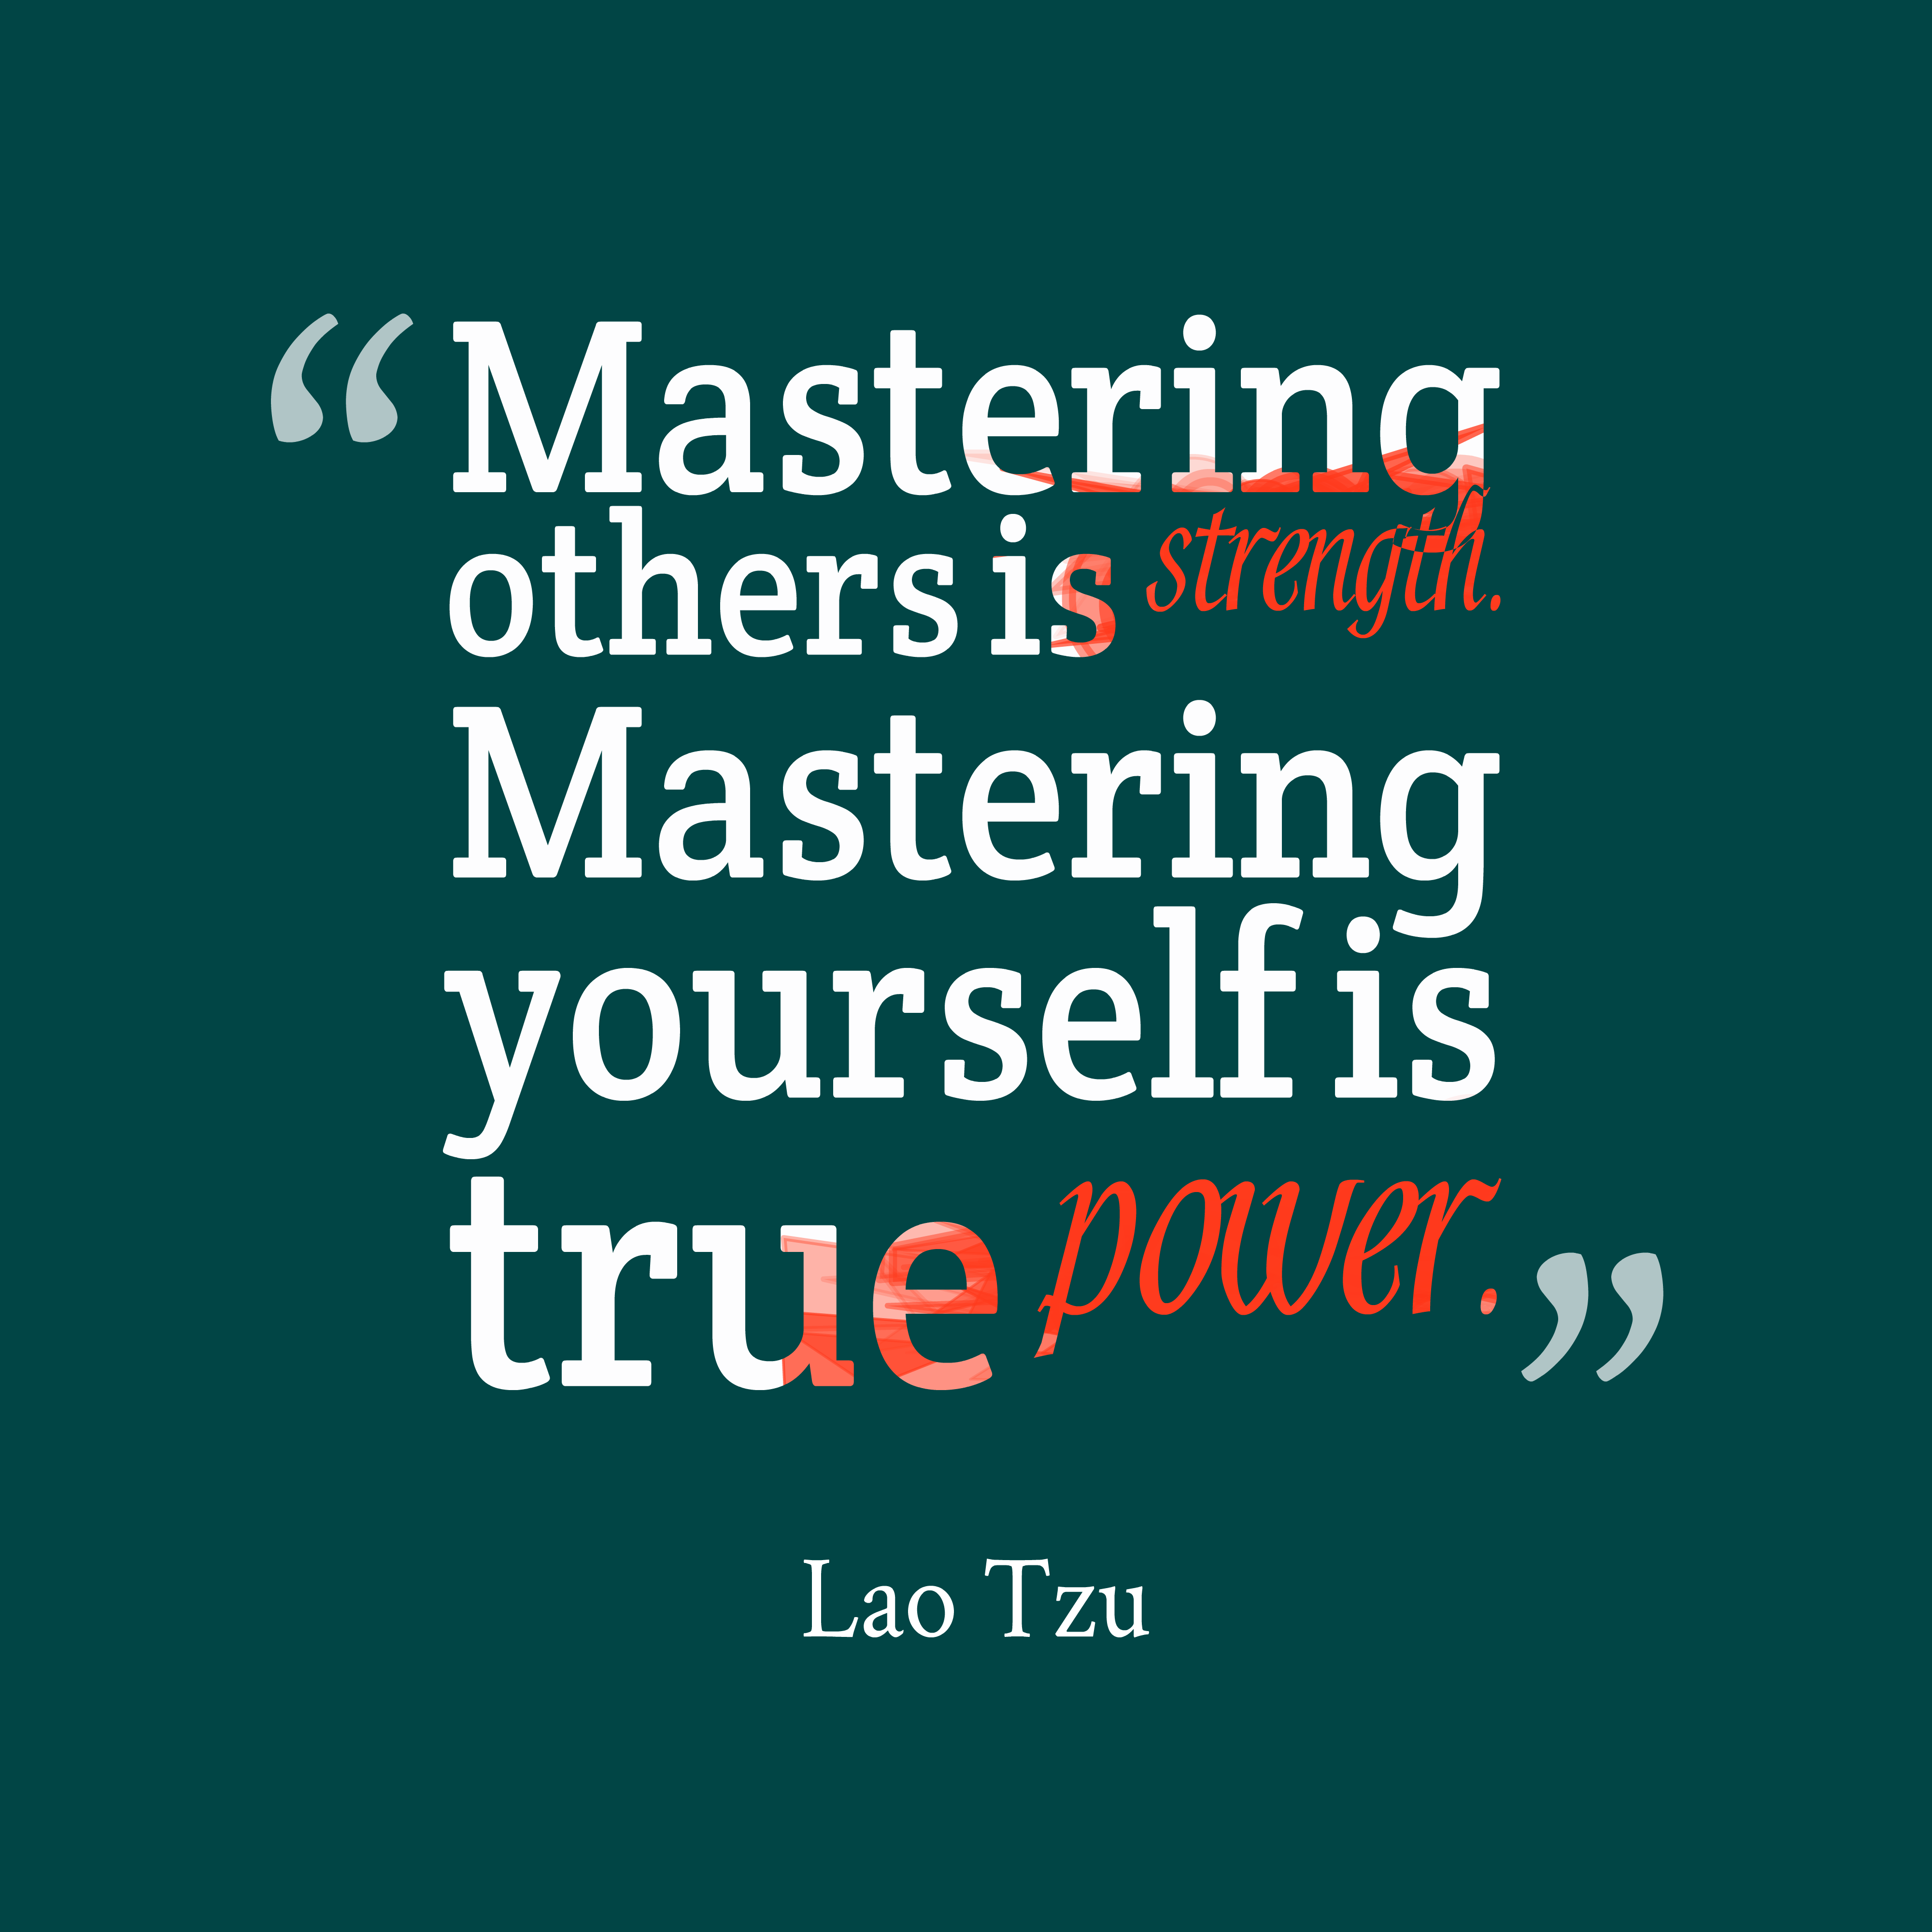 Lao Tzu Quotes Life 90 Best Sun Tzu Quotes Images